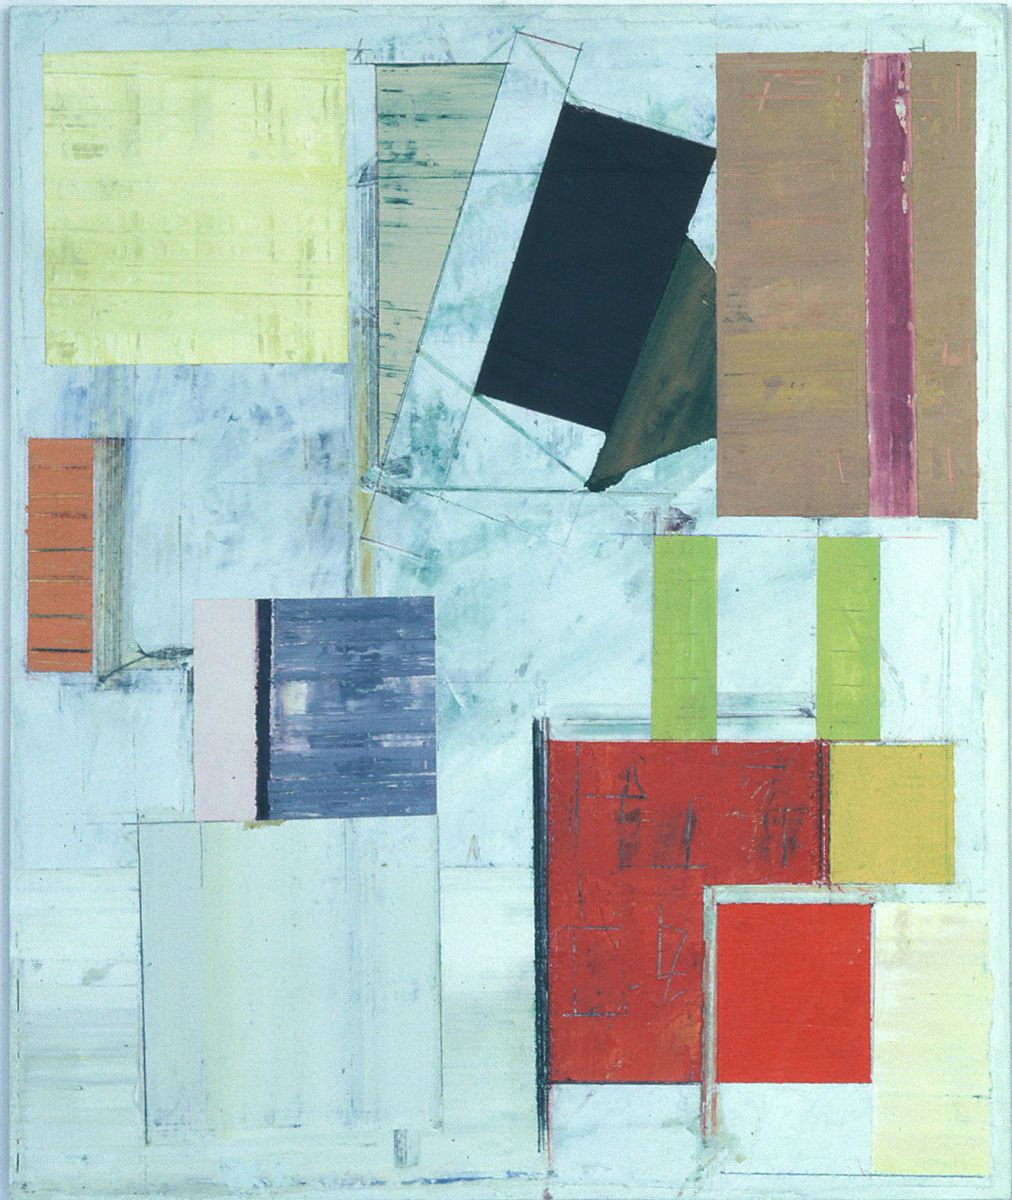 "ONEIRIC CONSTRUCT no. 2   ,   1981-2 San Francisco,24 x 20""  ,  acrylic on muslin  affixed to plywood panel"